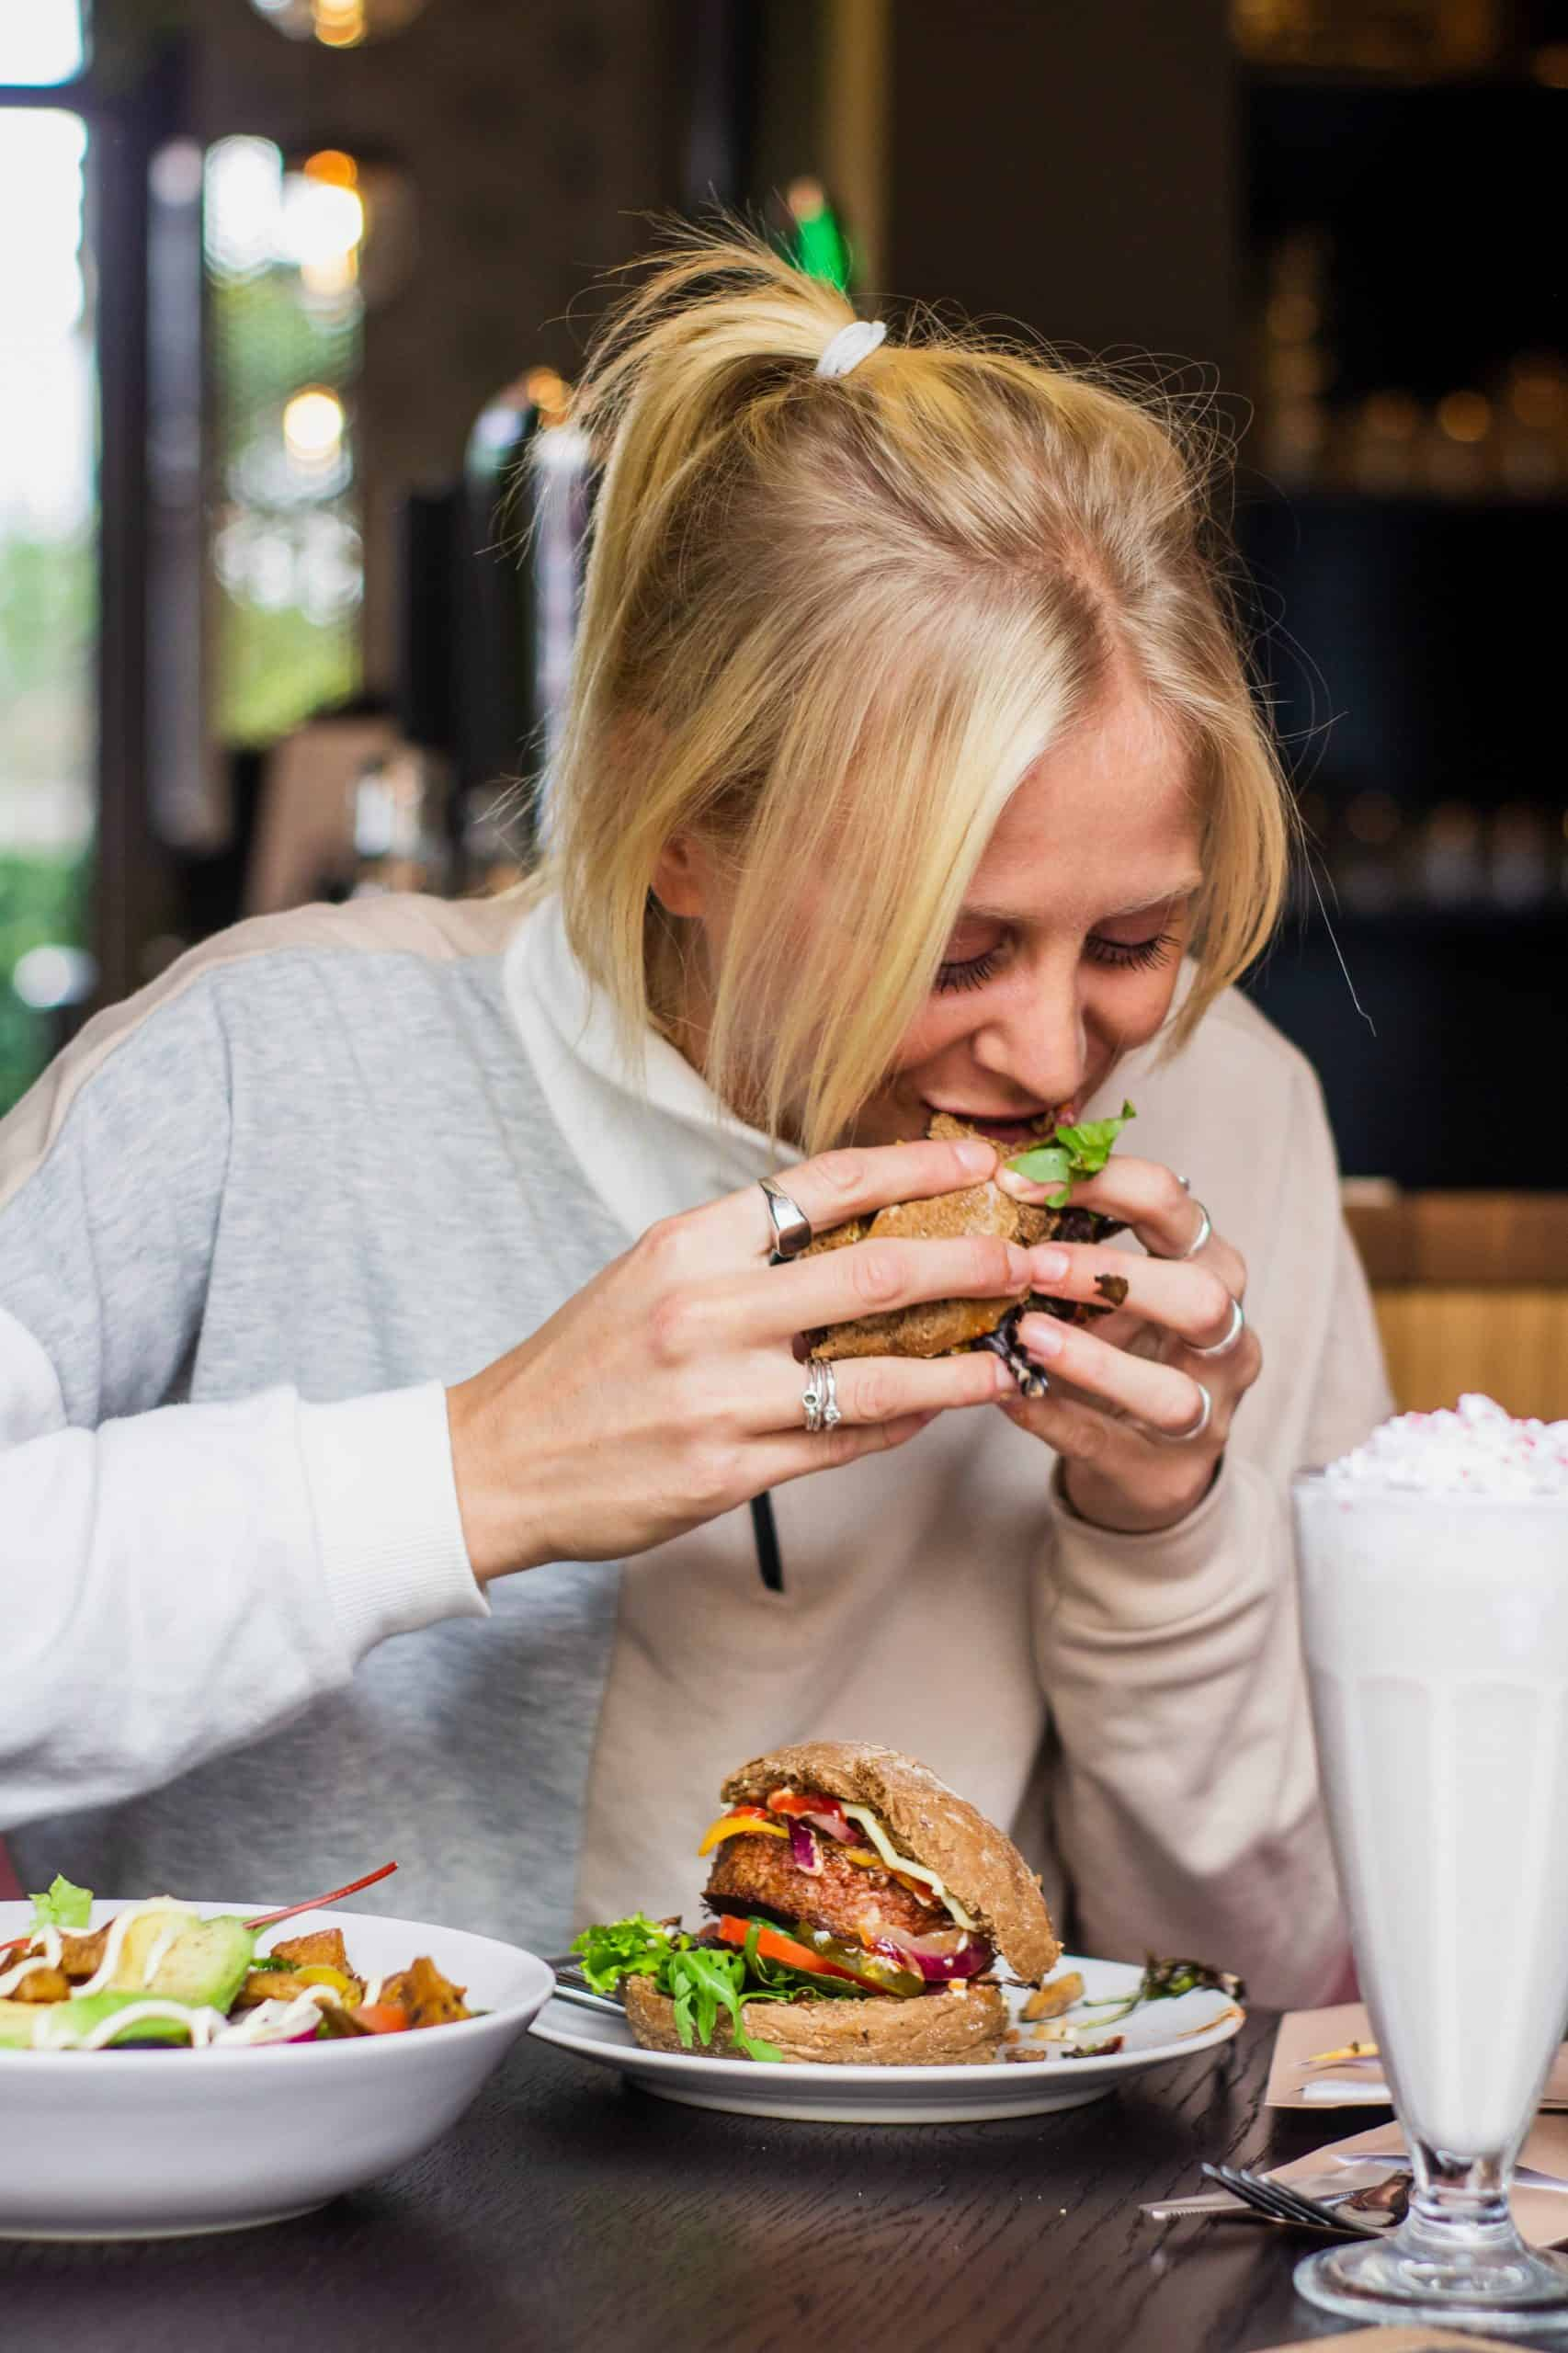 blonde woman eating a burger and not being affected by negative food language